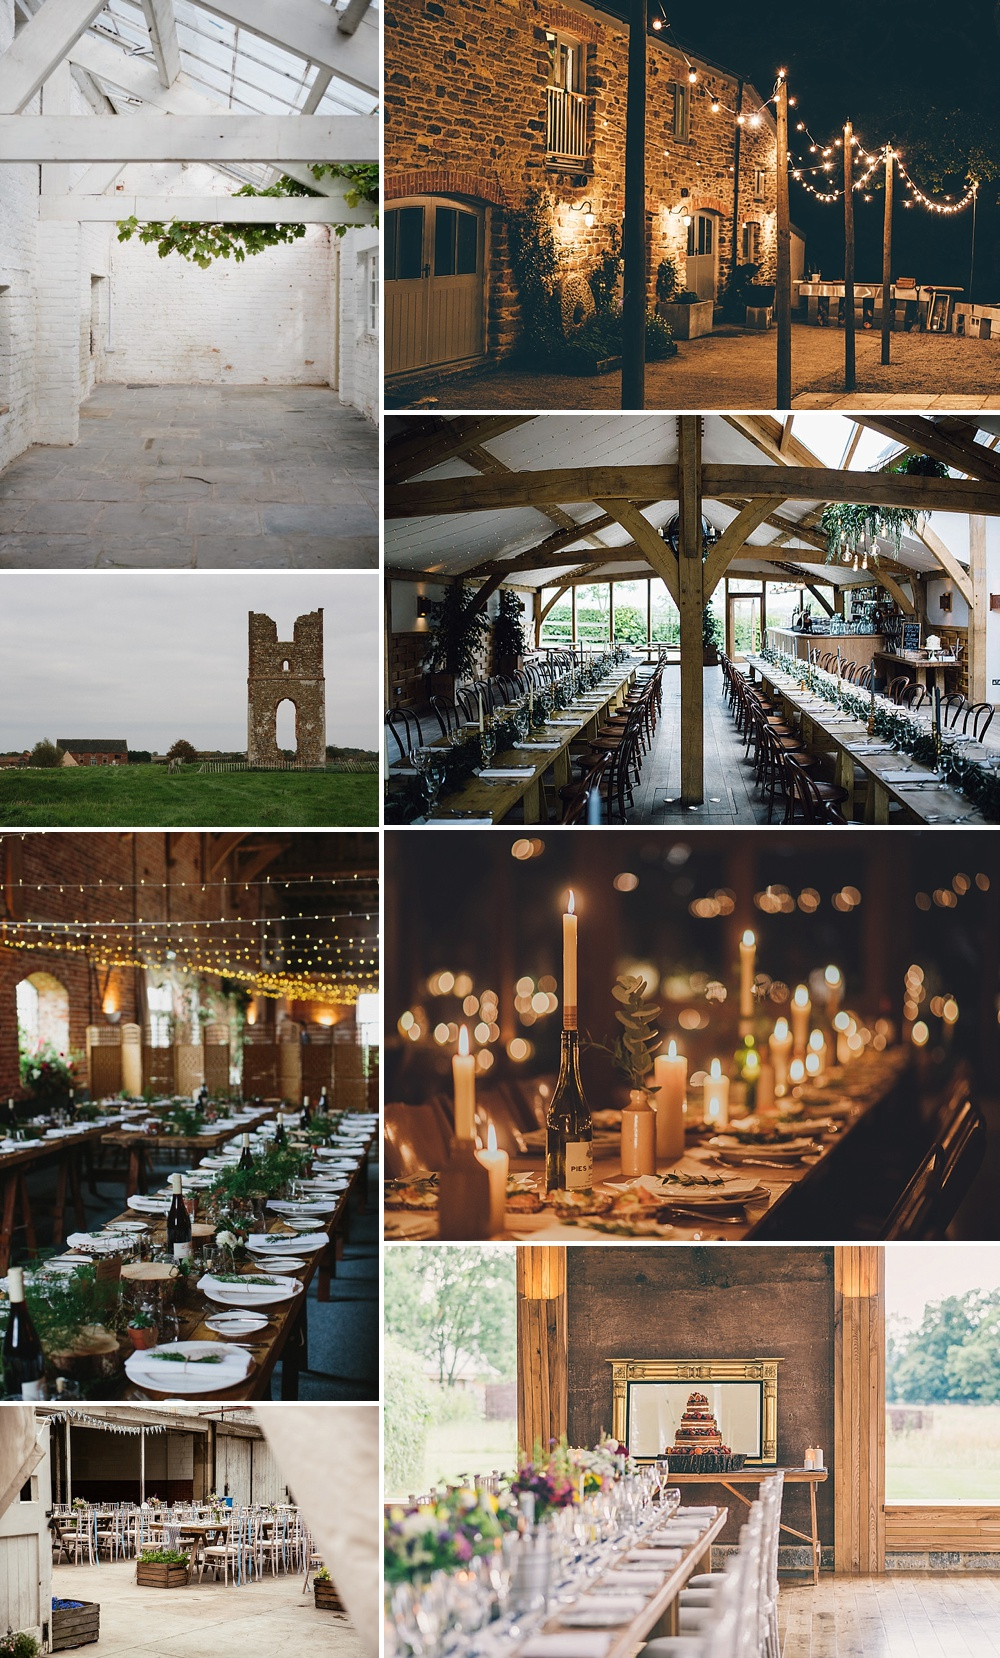 Rustic Wedding Venues // The Love Lust List